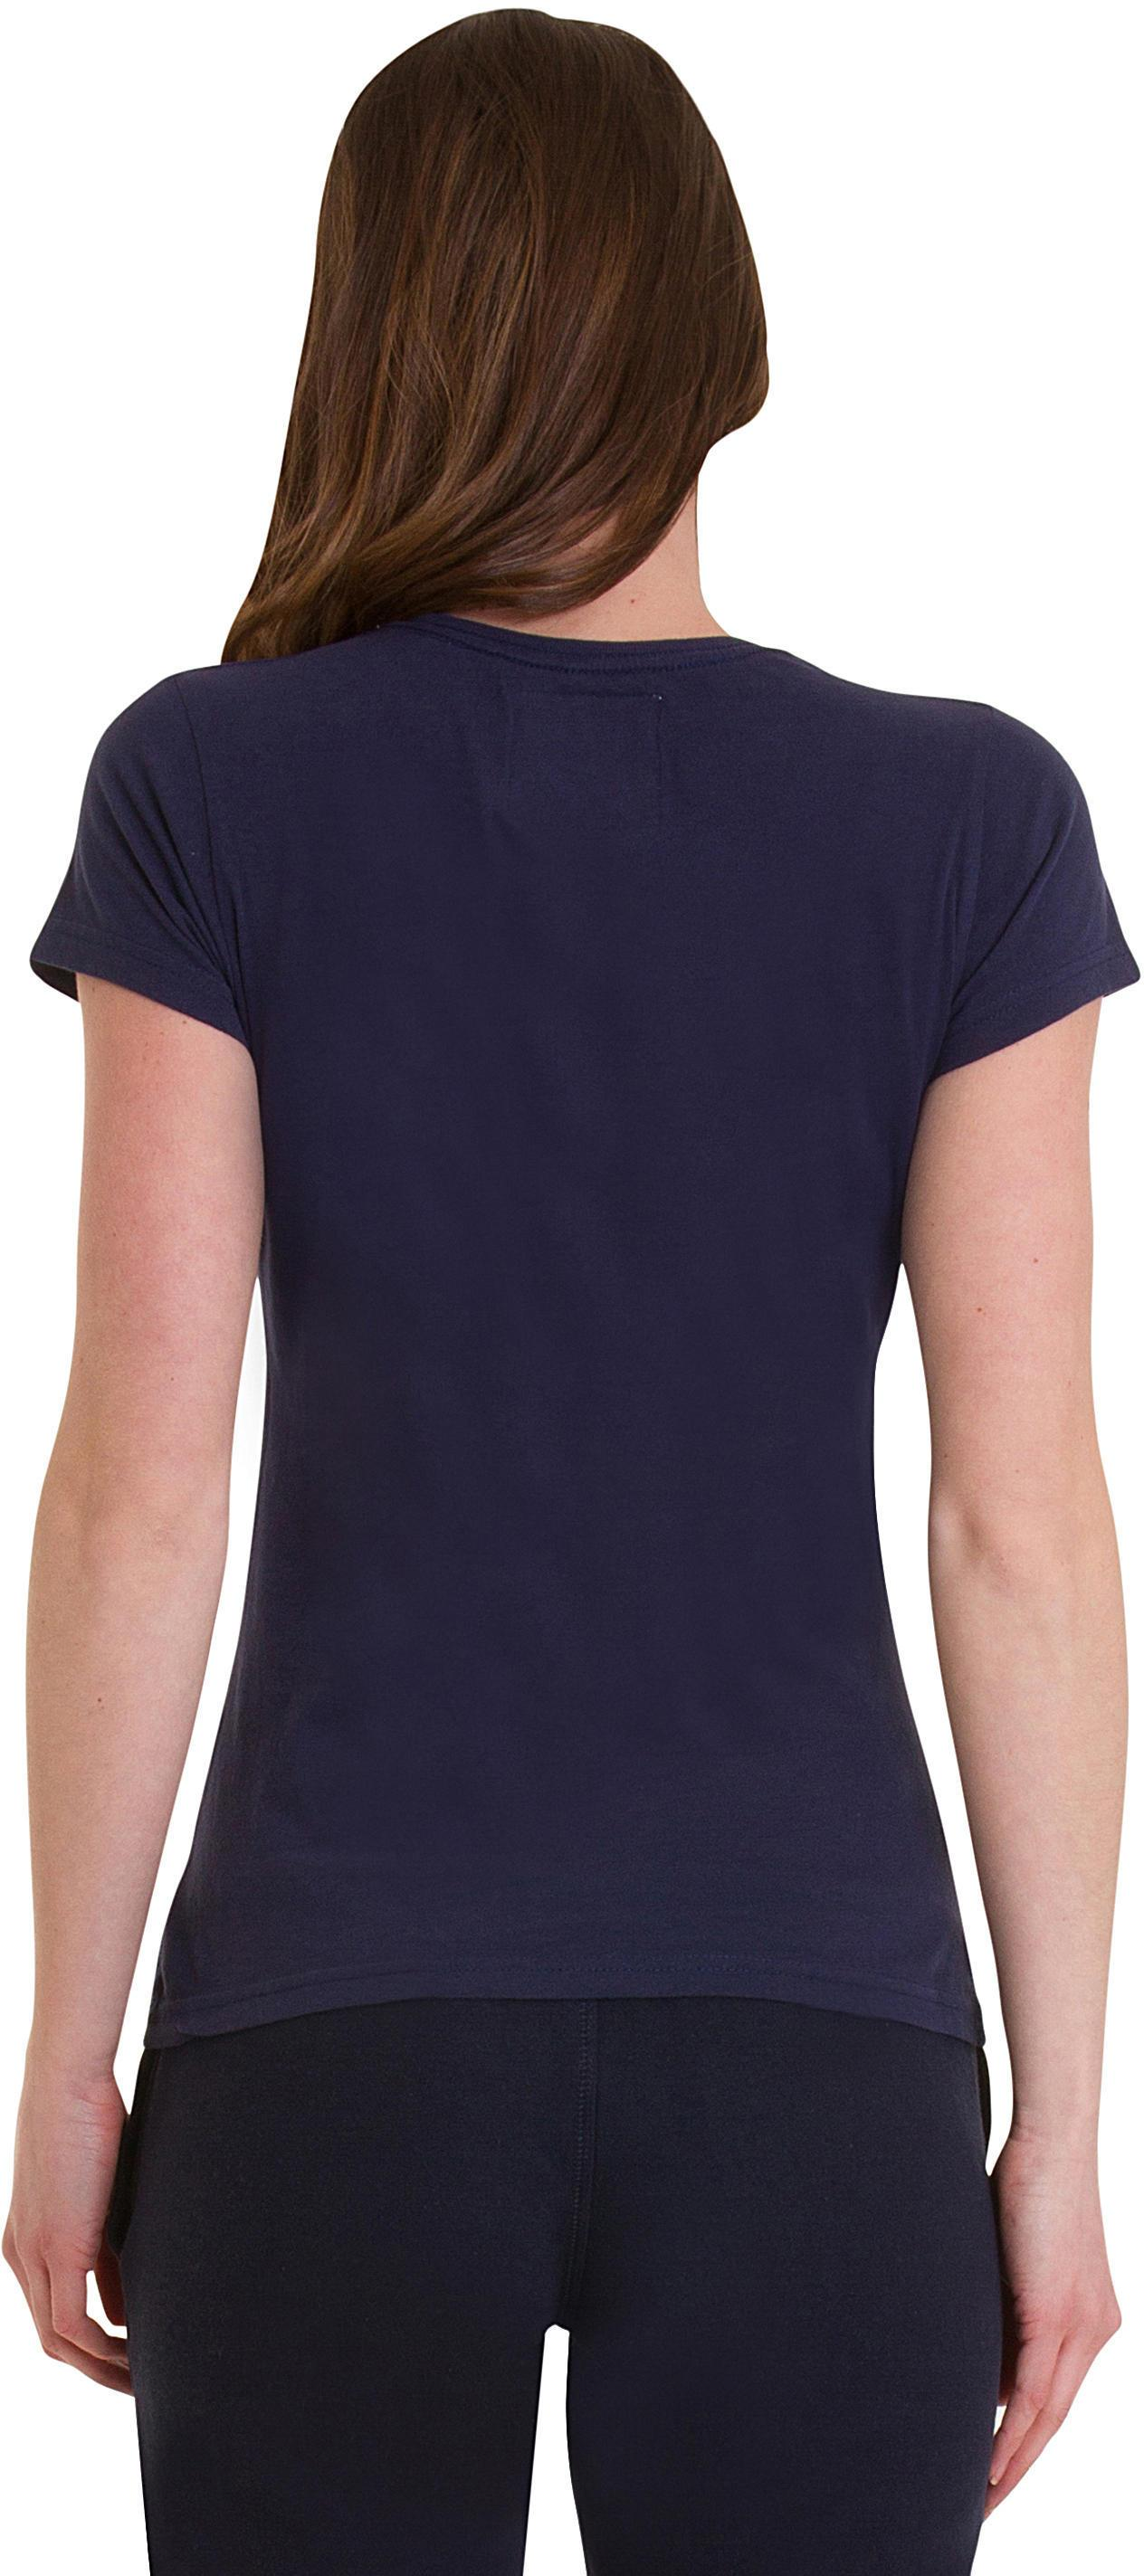 Superdry-T-Shirt-Women-039-s-Tops-Assorted-Styles thumbnail 74